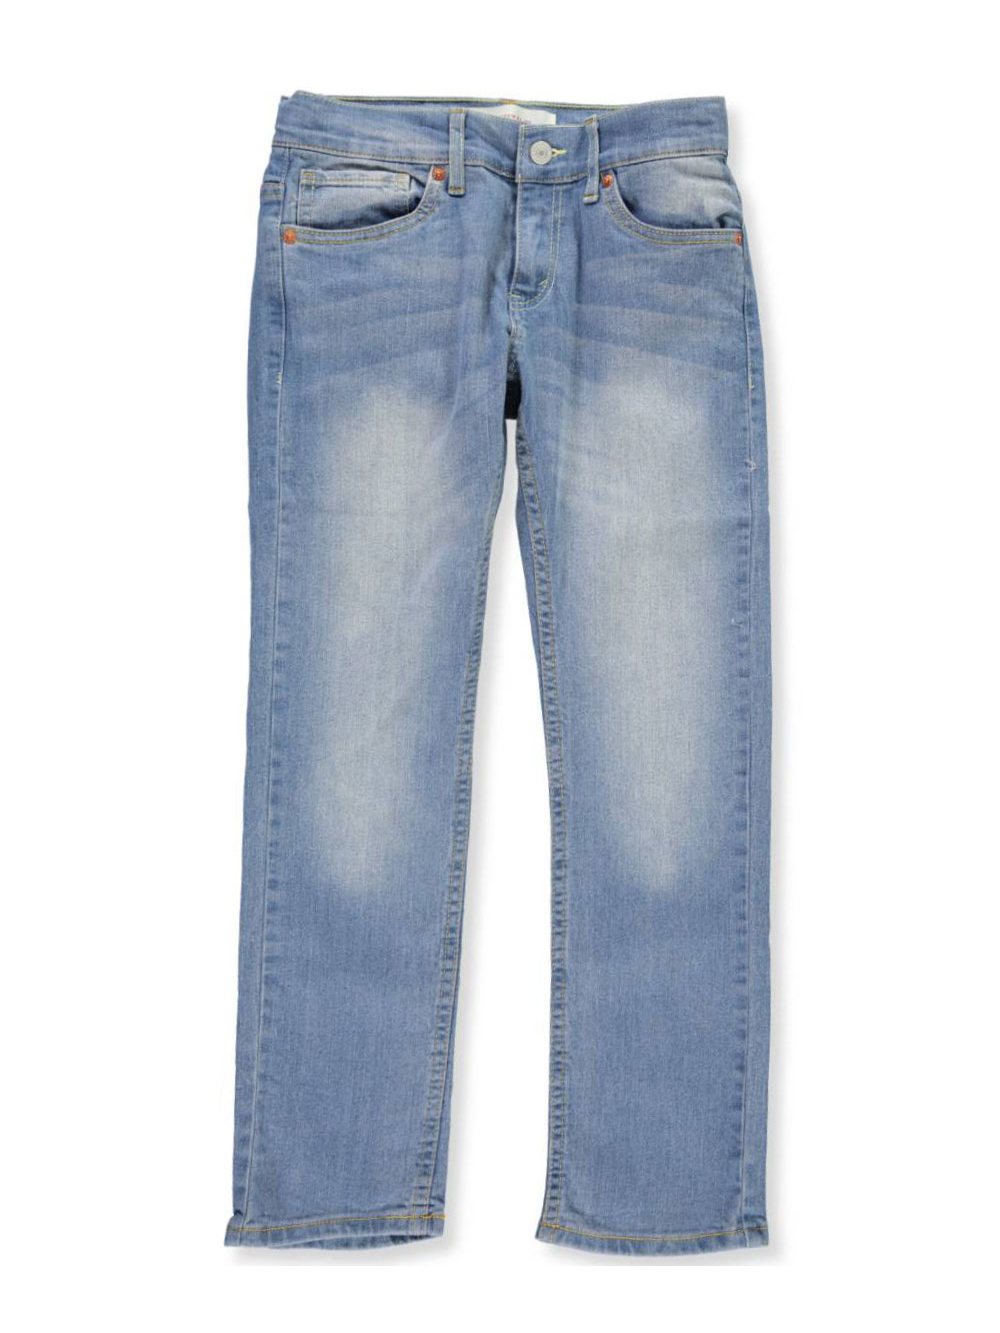 Boys' Faded Denim Jeans